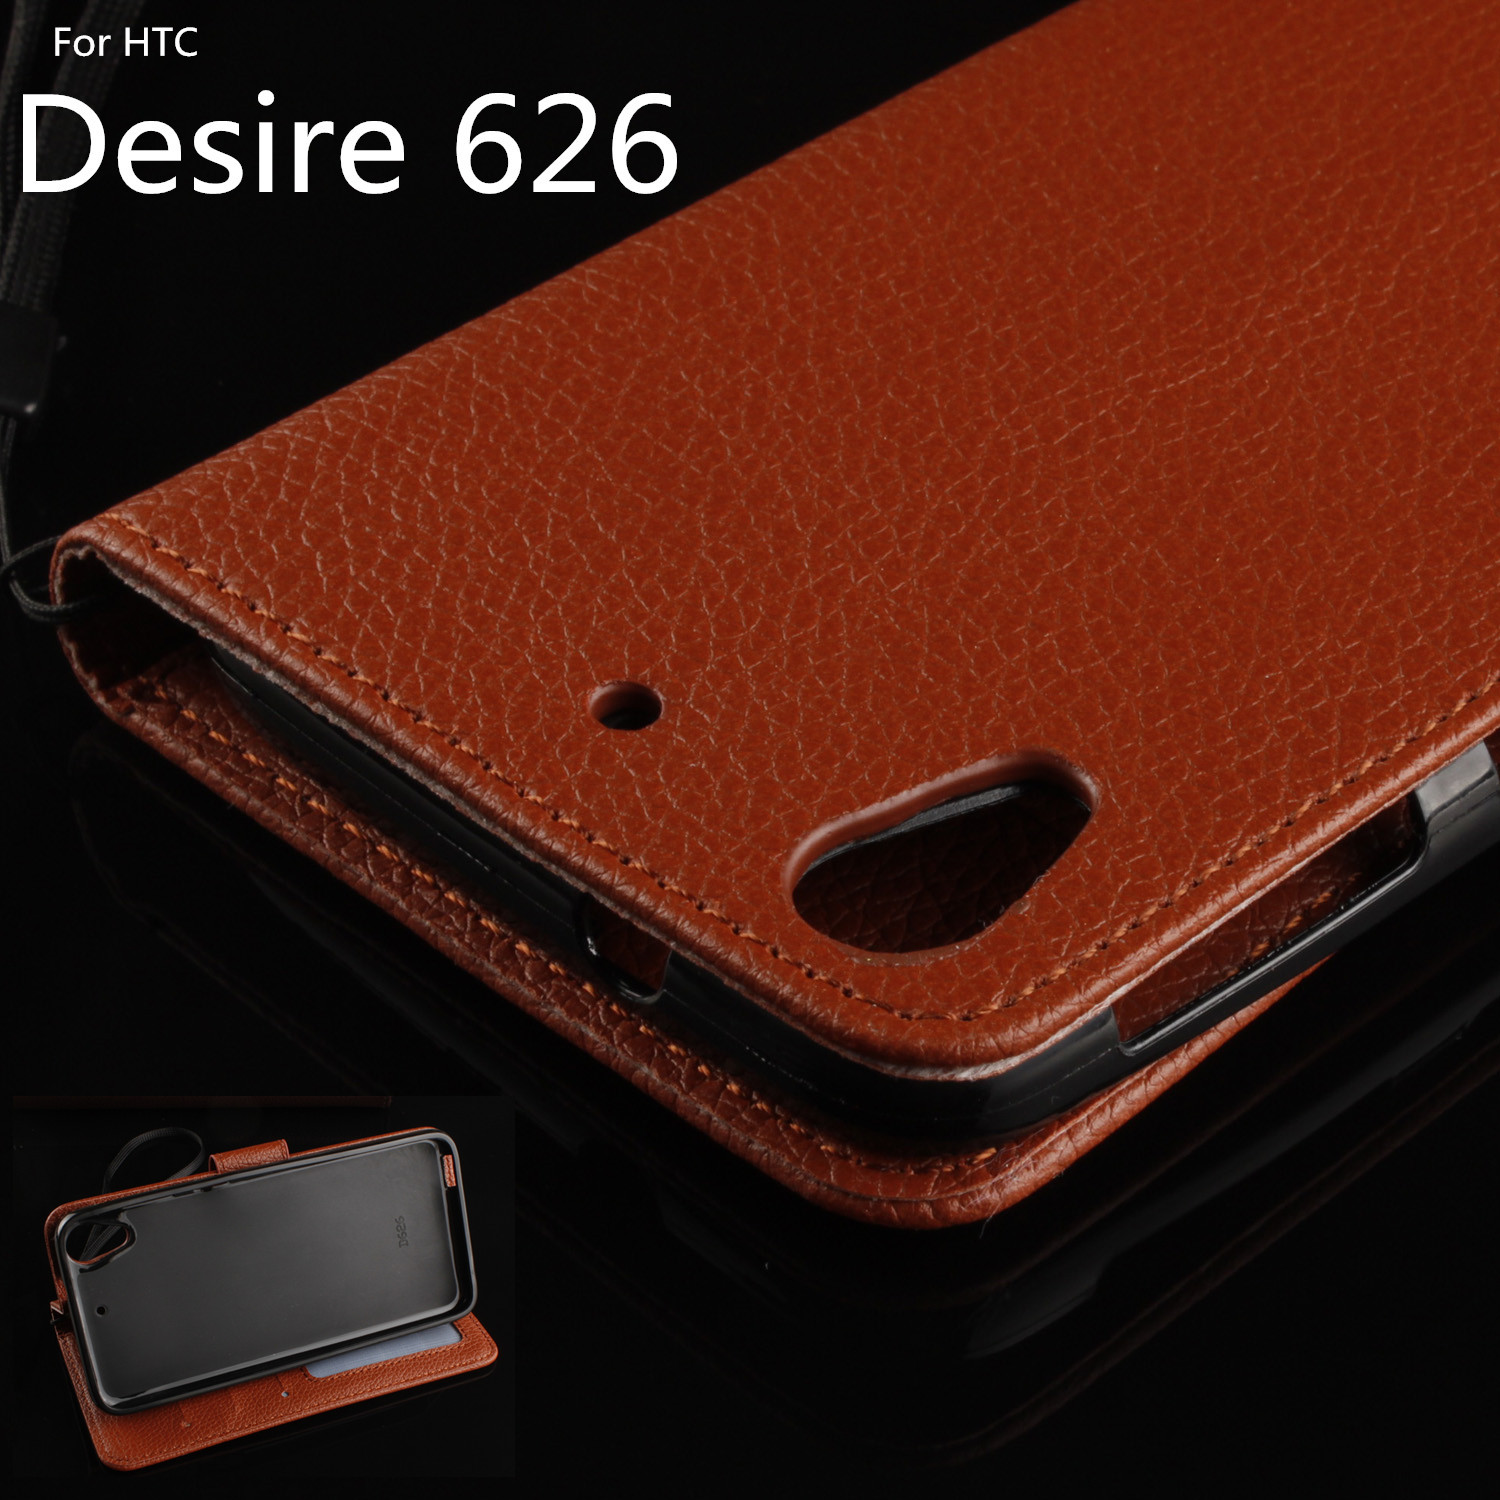 Case Star Protective Carrying Case For Brother Ds 620 Mobile Color